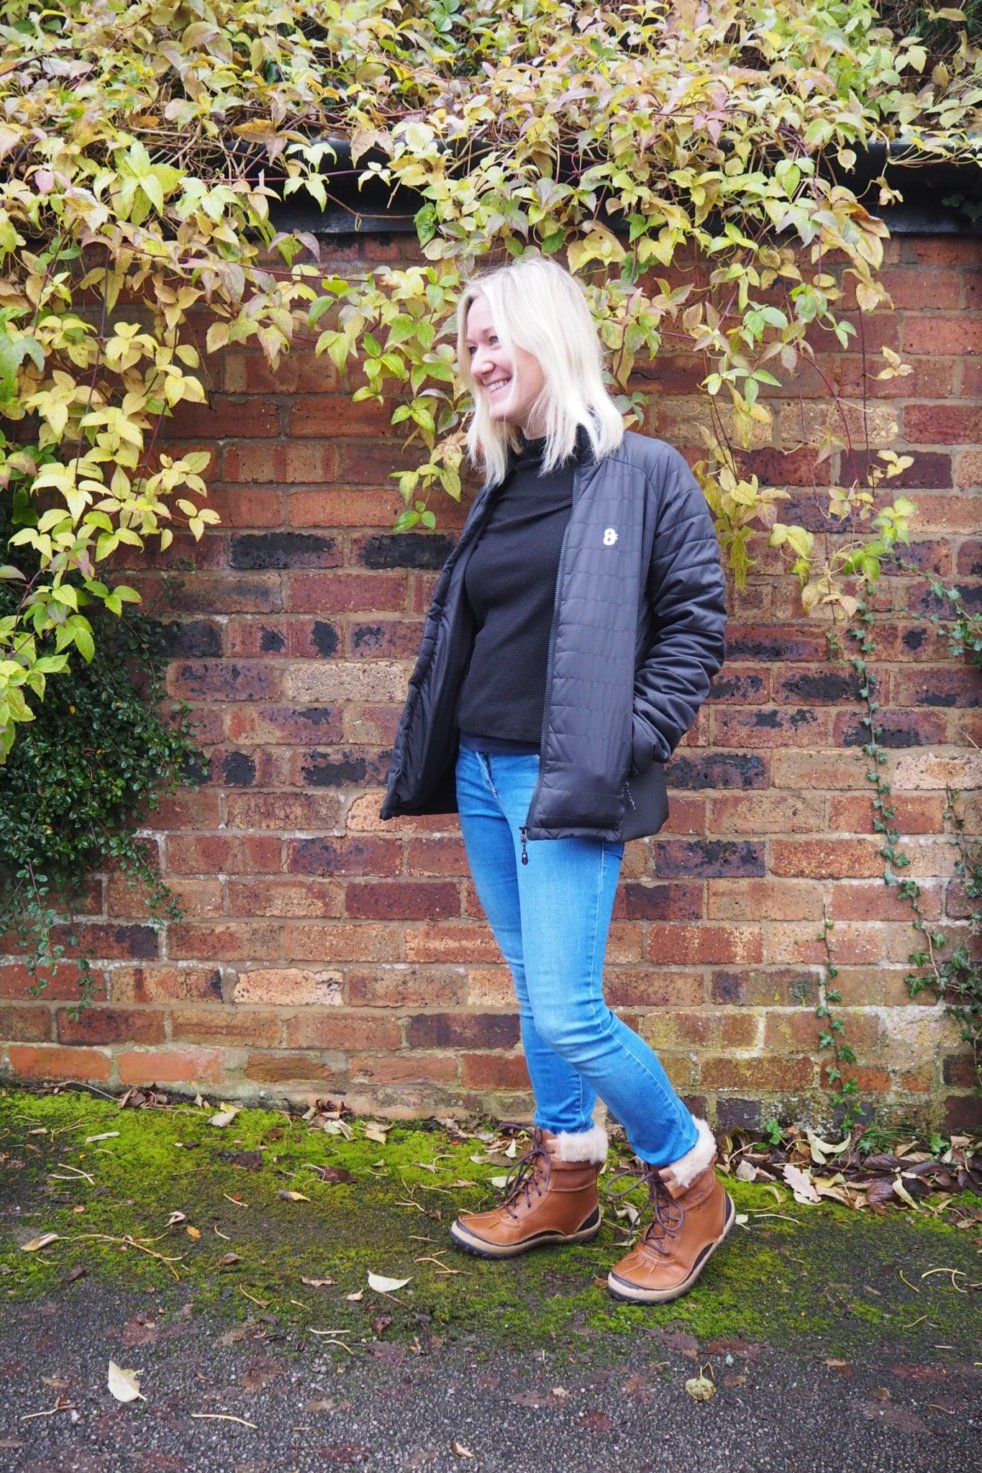 Merrell Womens Tremblant Polar Mid Waterproof Boots REVIEW